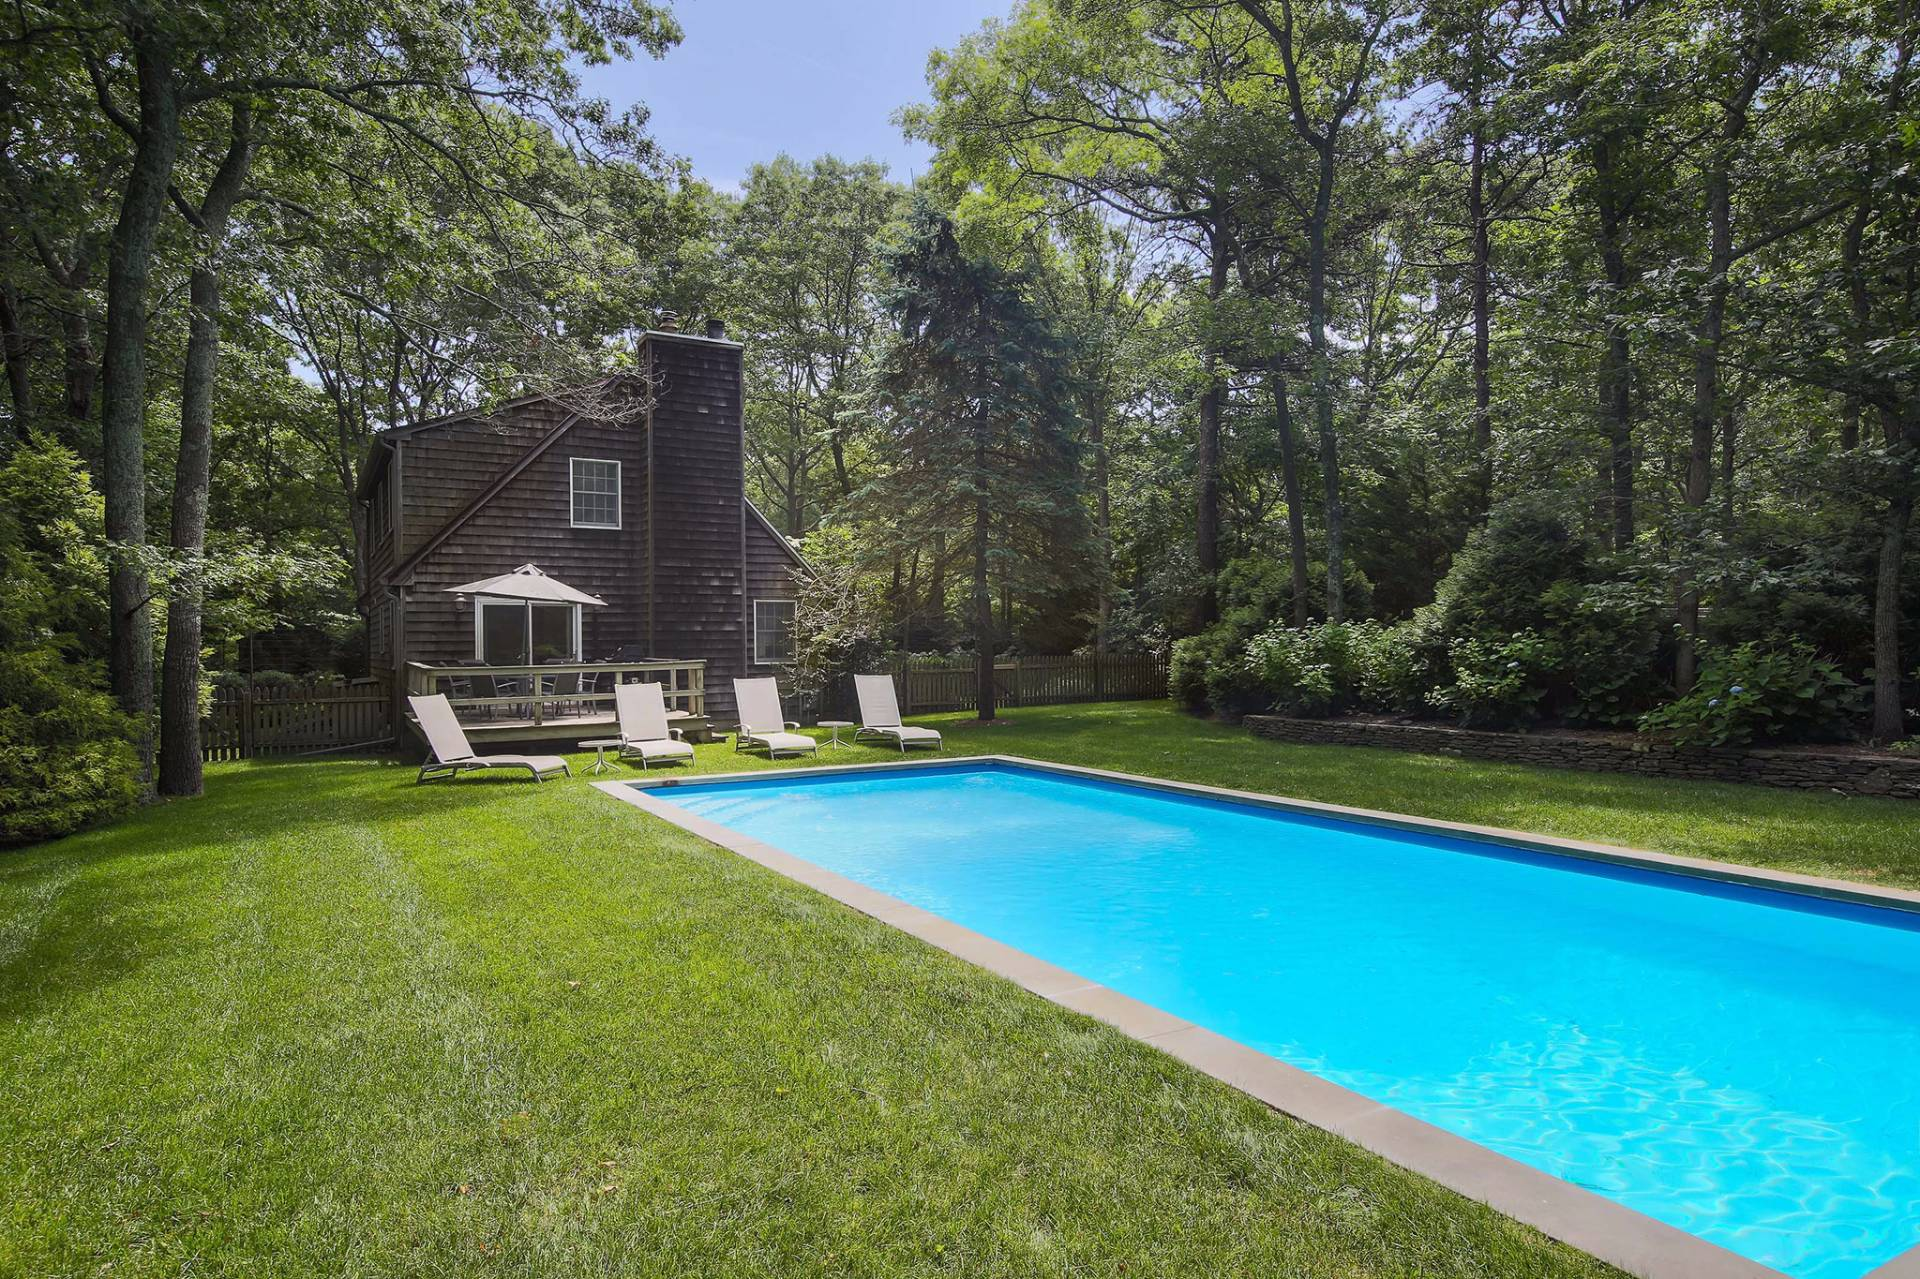 Single Family Home for Sale at Modern Vibe, Traditional Cape 12 Wheelock Walk, East Hampton, New York